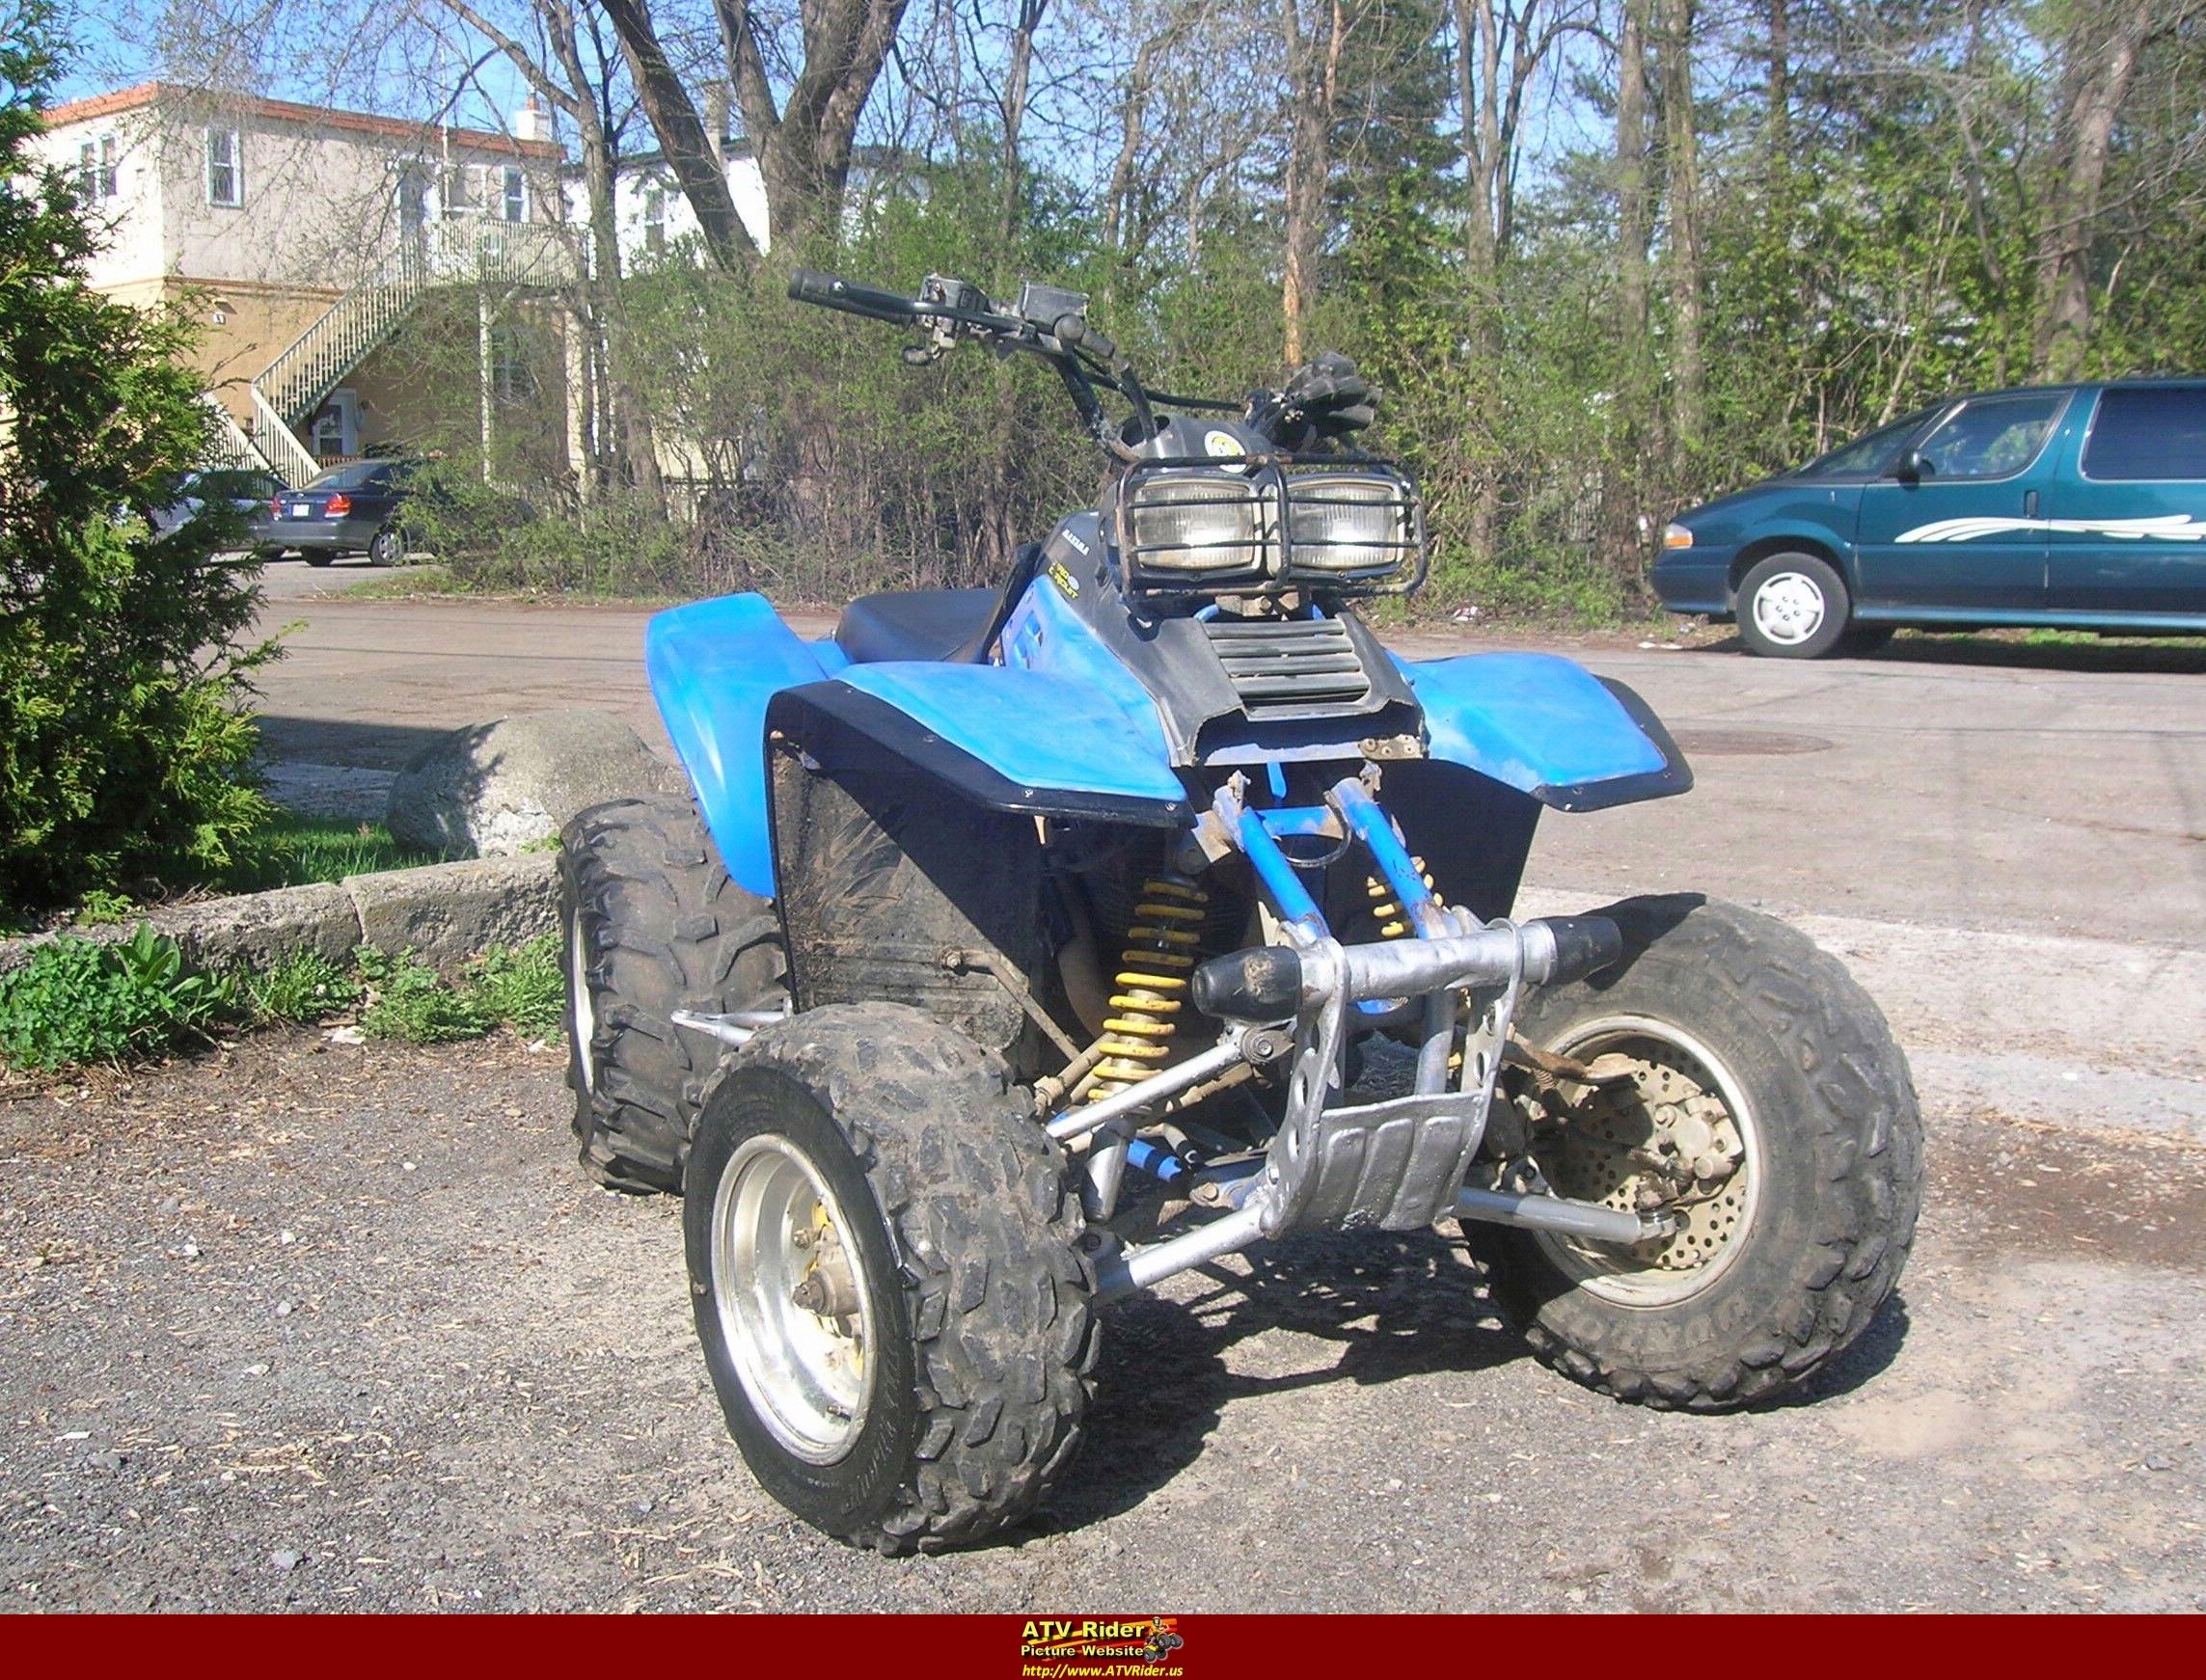 1989 Yamaha Warrior 350 Atv, Yamaha, Mtb Bike, Atvs